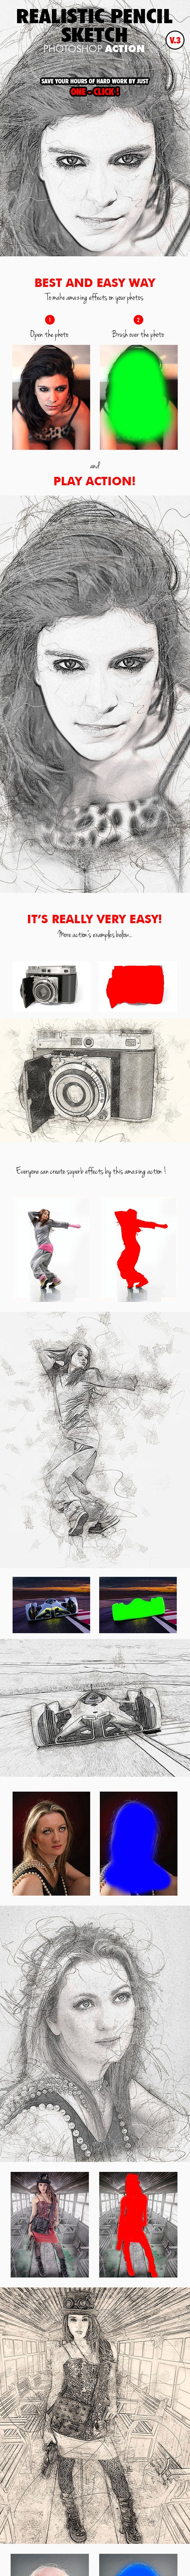 Realistic pencil sketch photoshop action v 3 photo effects actions